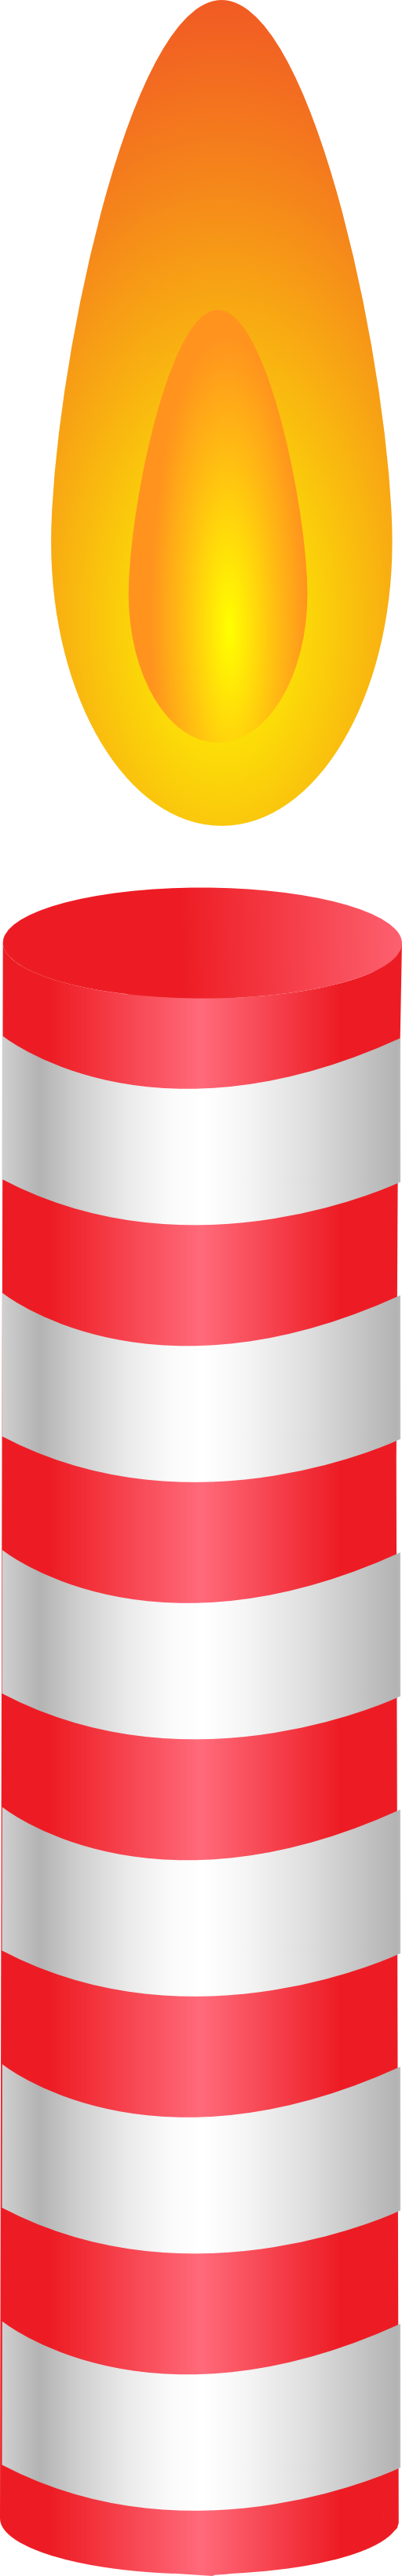 Red Candle Clip Art.